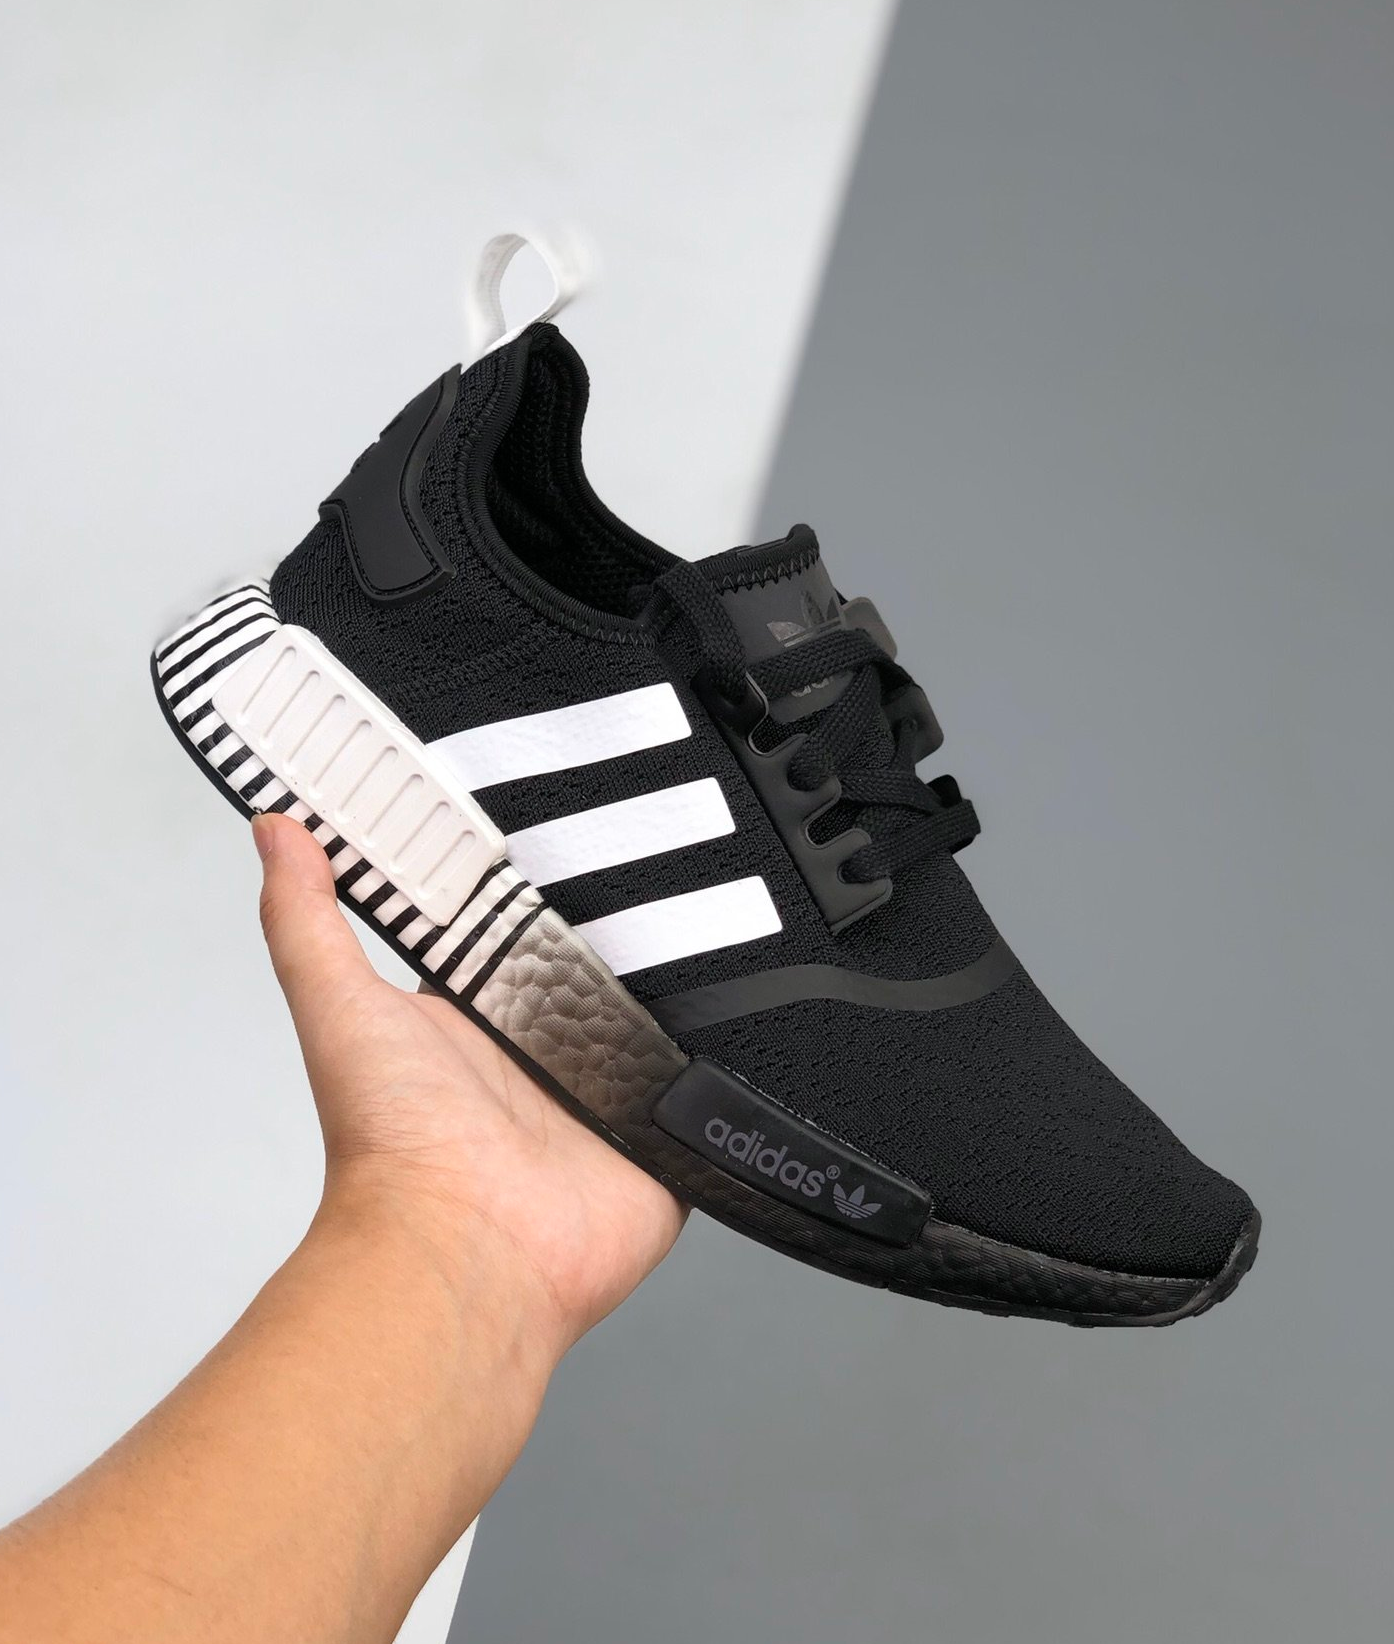 On Sale Adidas Nmd R1 Gradient Black White Sneaker Shouts